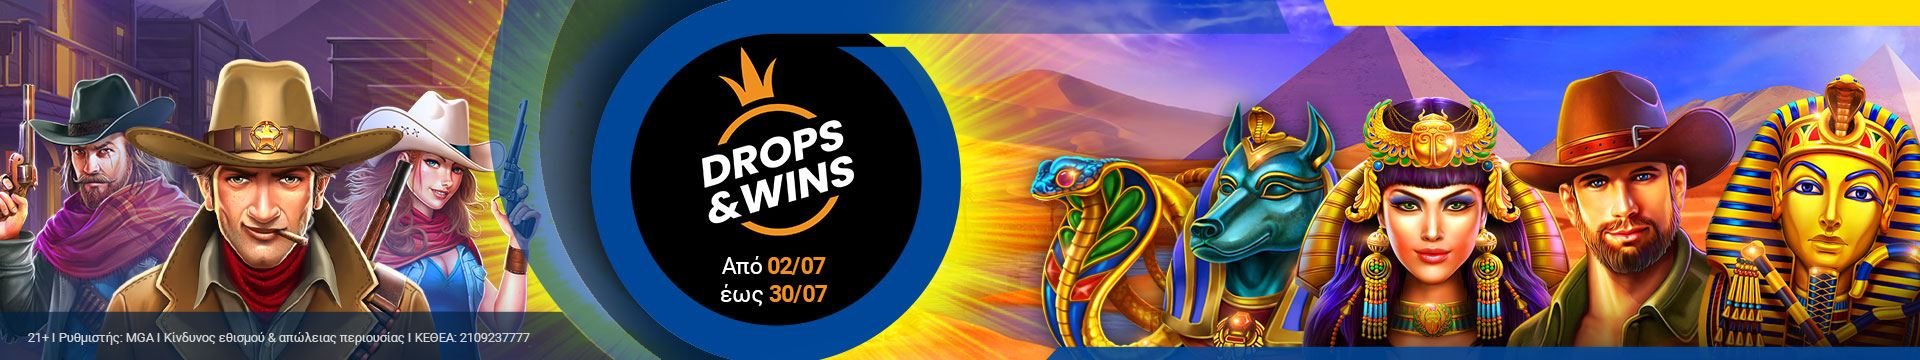 Drops & Wins - Daily Cash Prizes